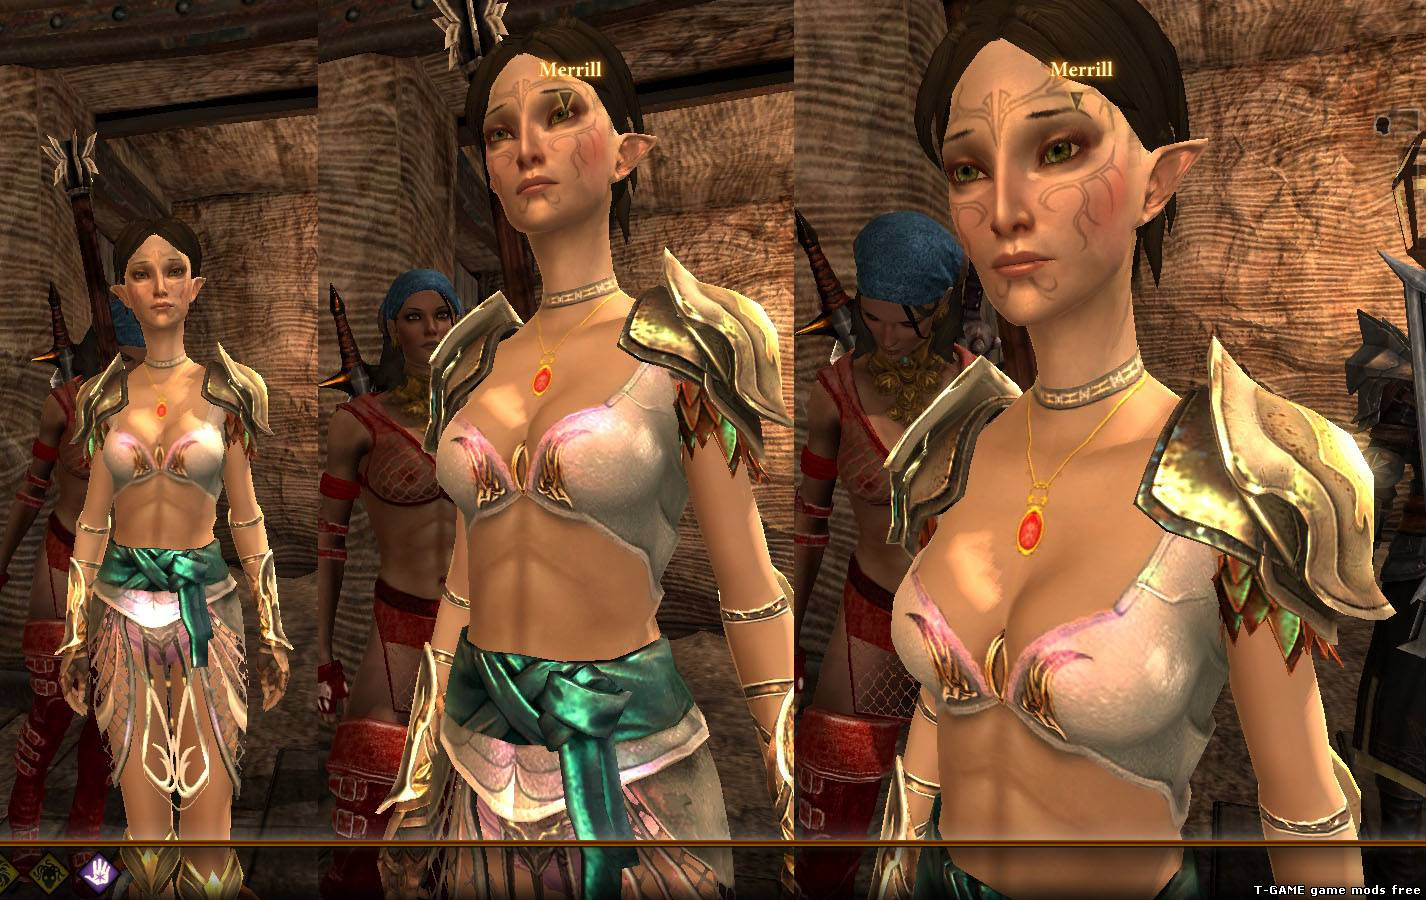 Dragonage2 nude mod nude tube